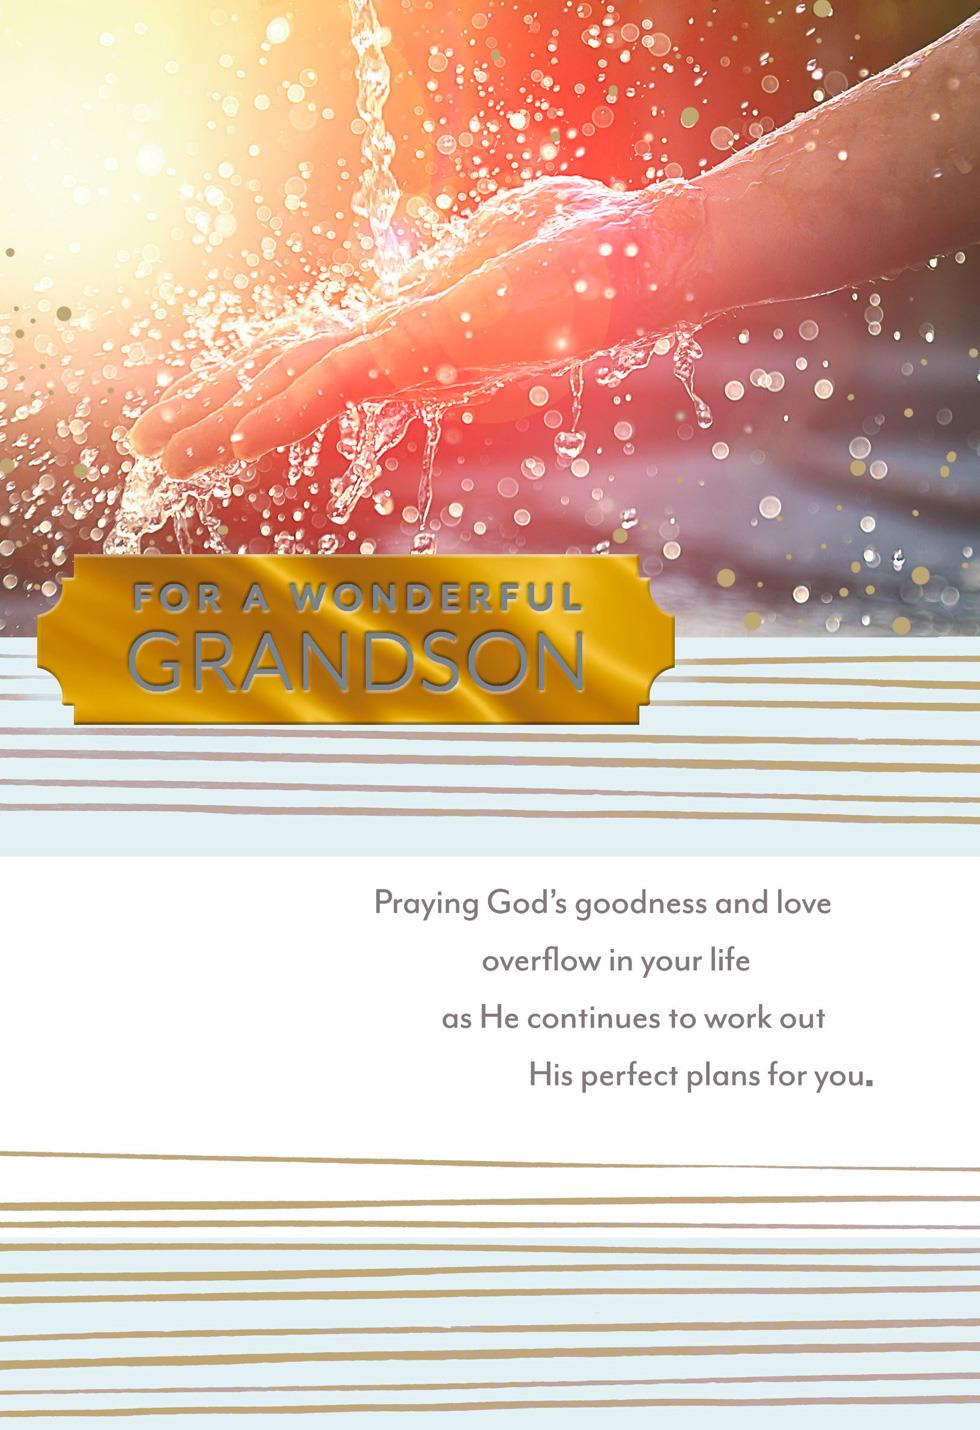 You Are a Blessing Religious Graduation Card for Grandson